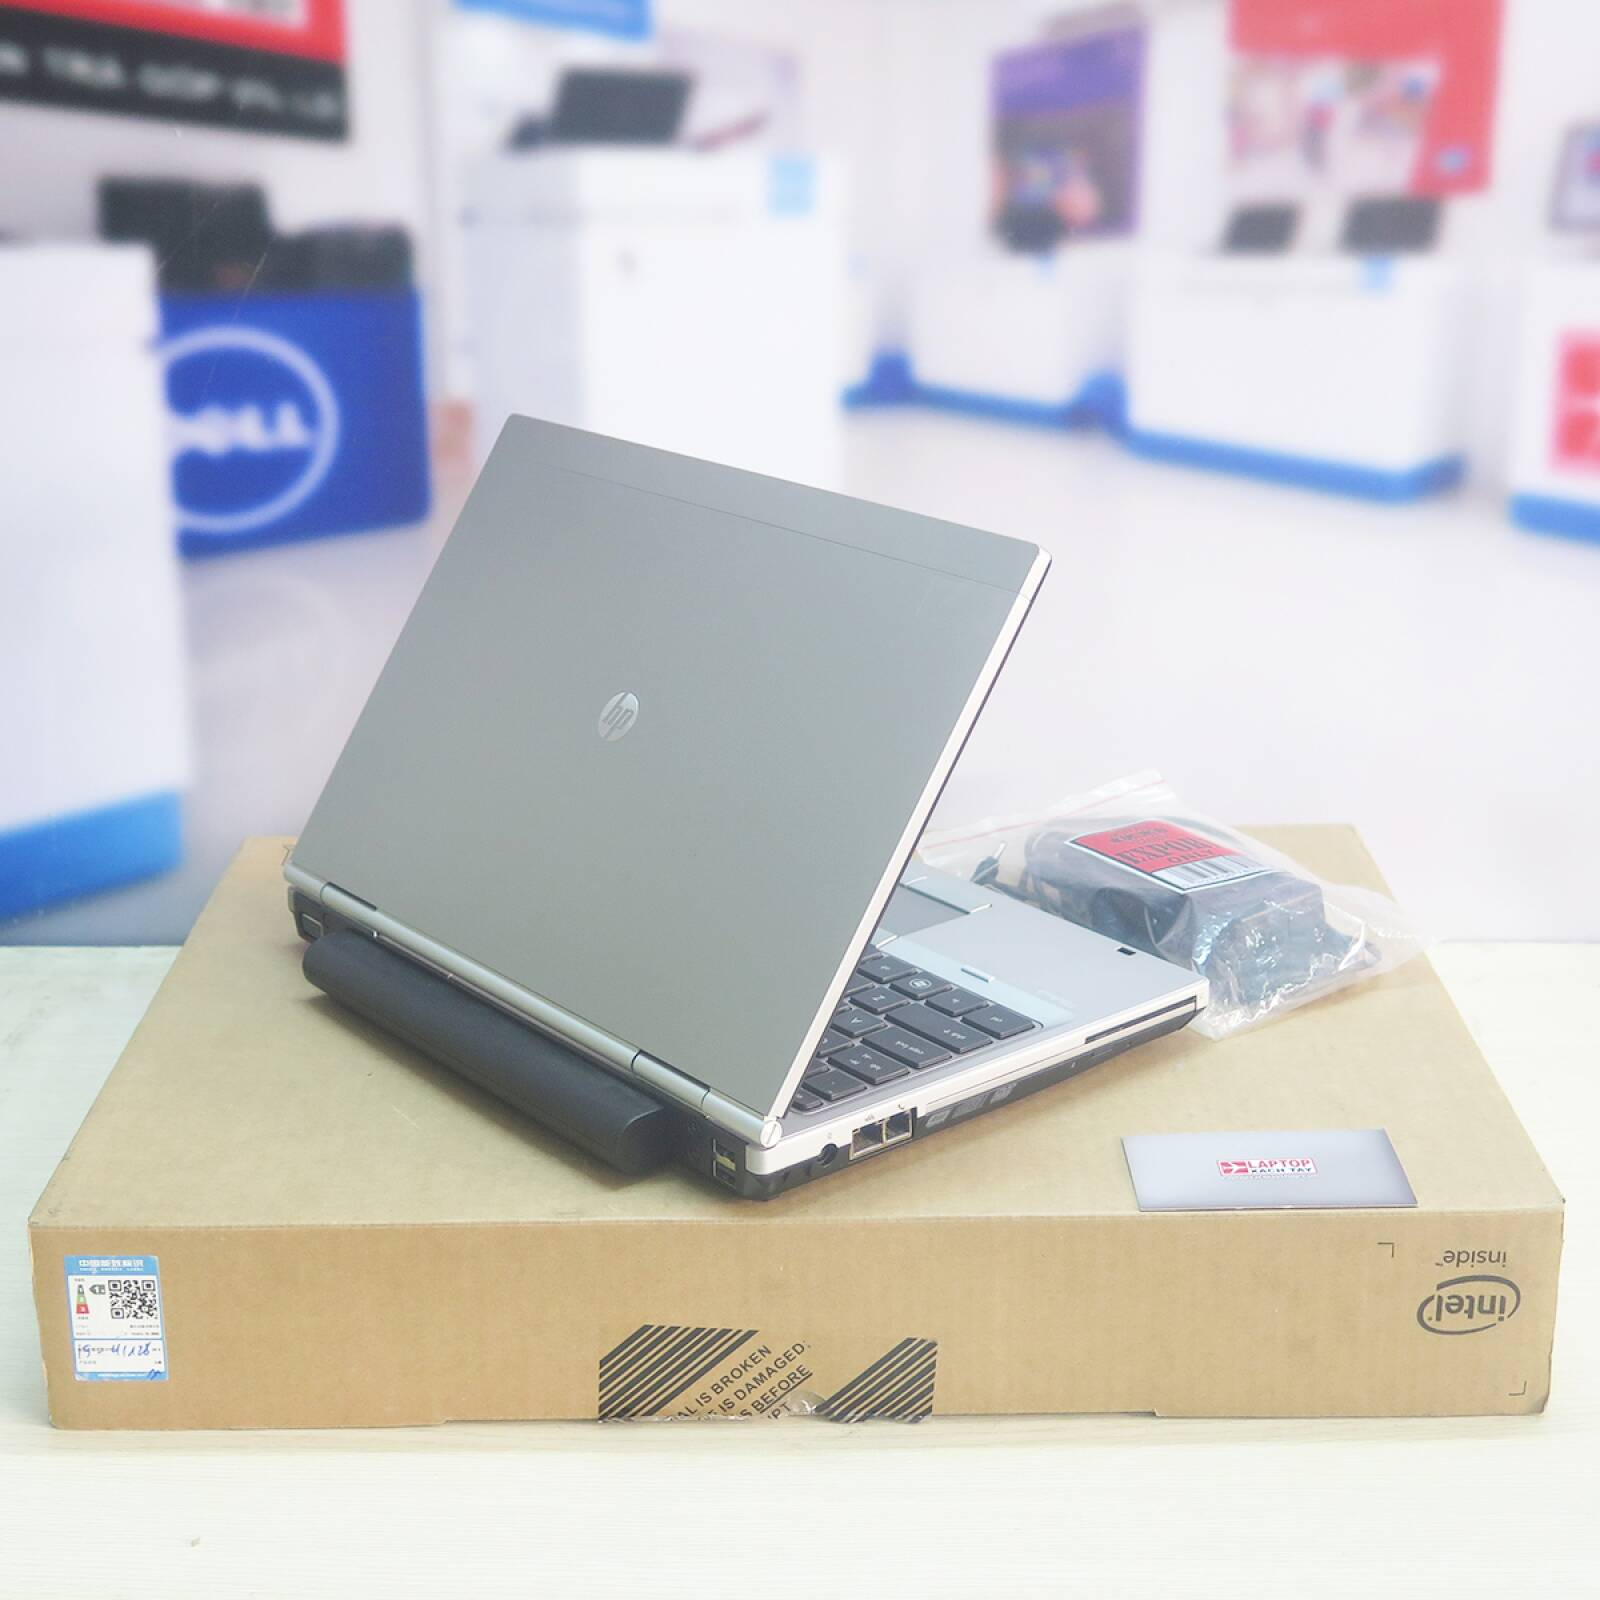 HP elitebook 2570p tại Laptopxachtayshop.com